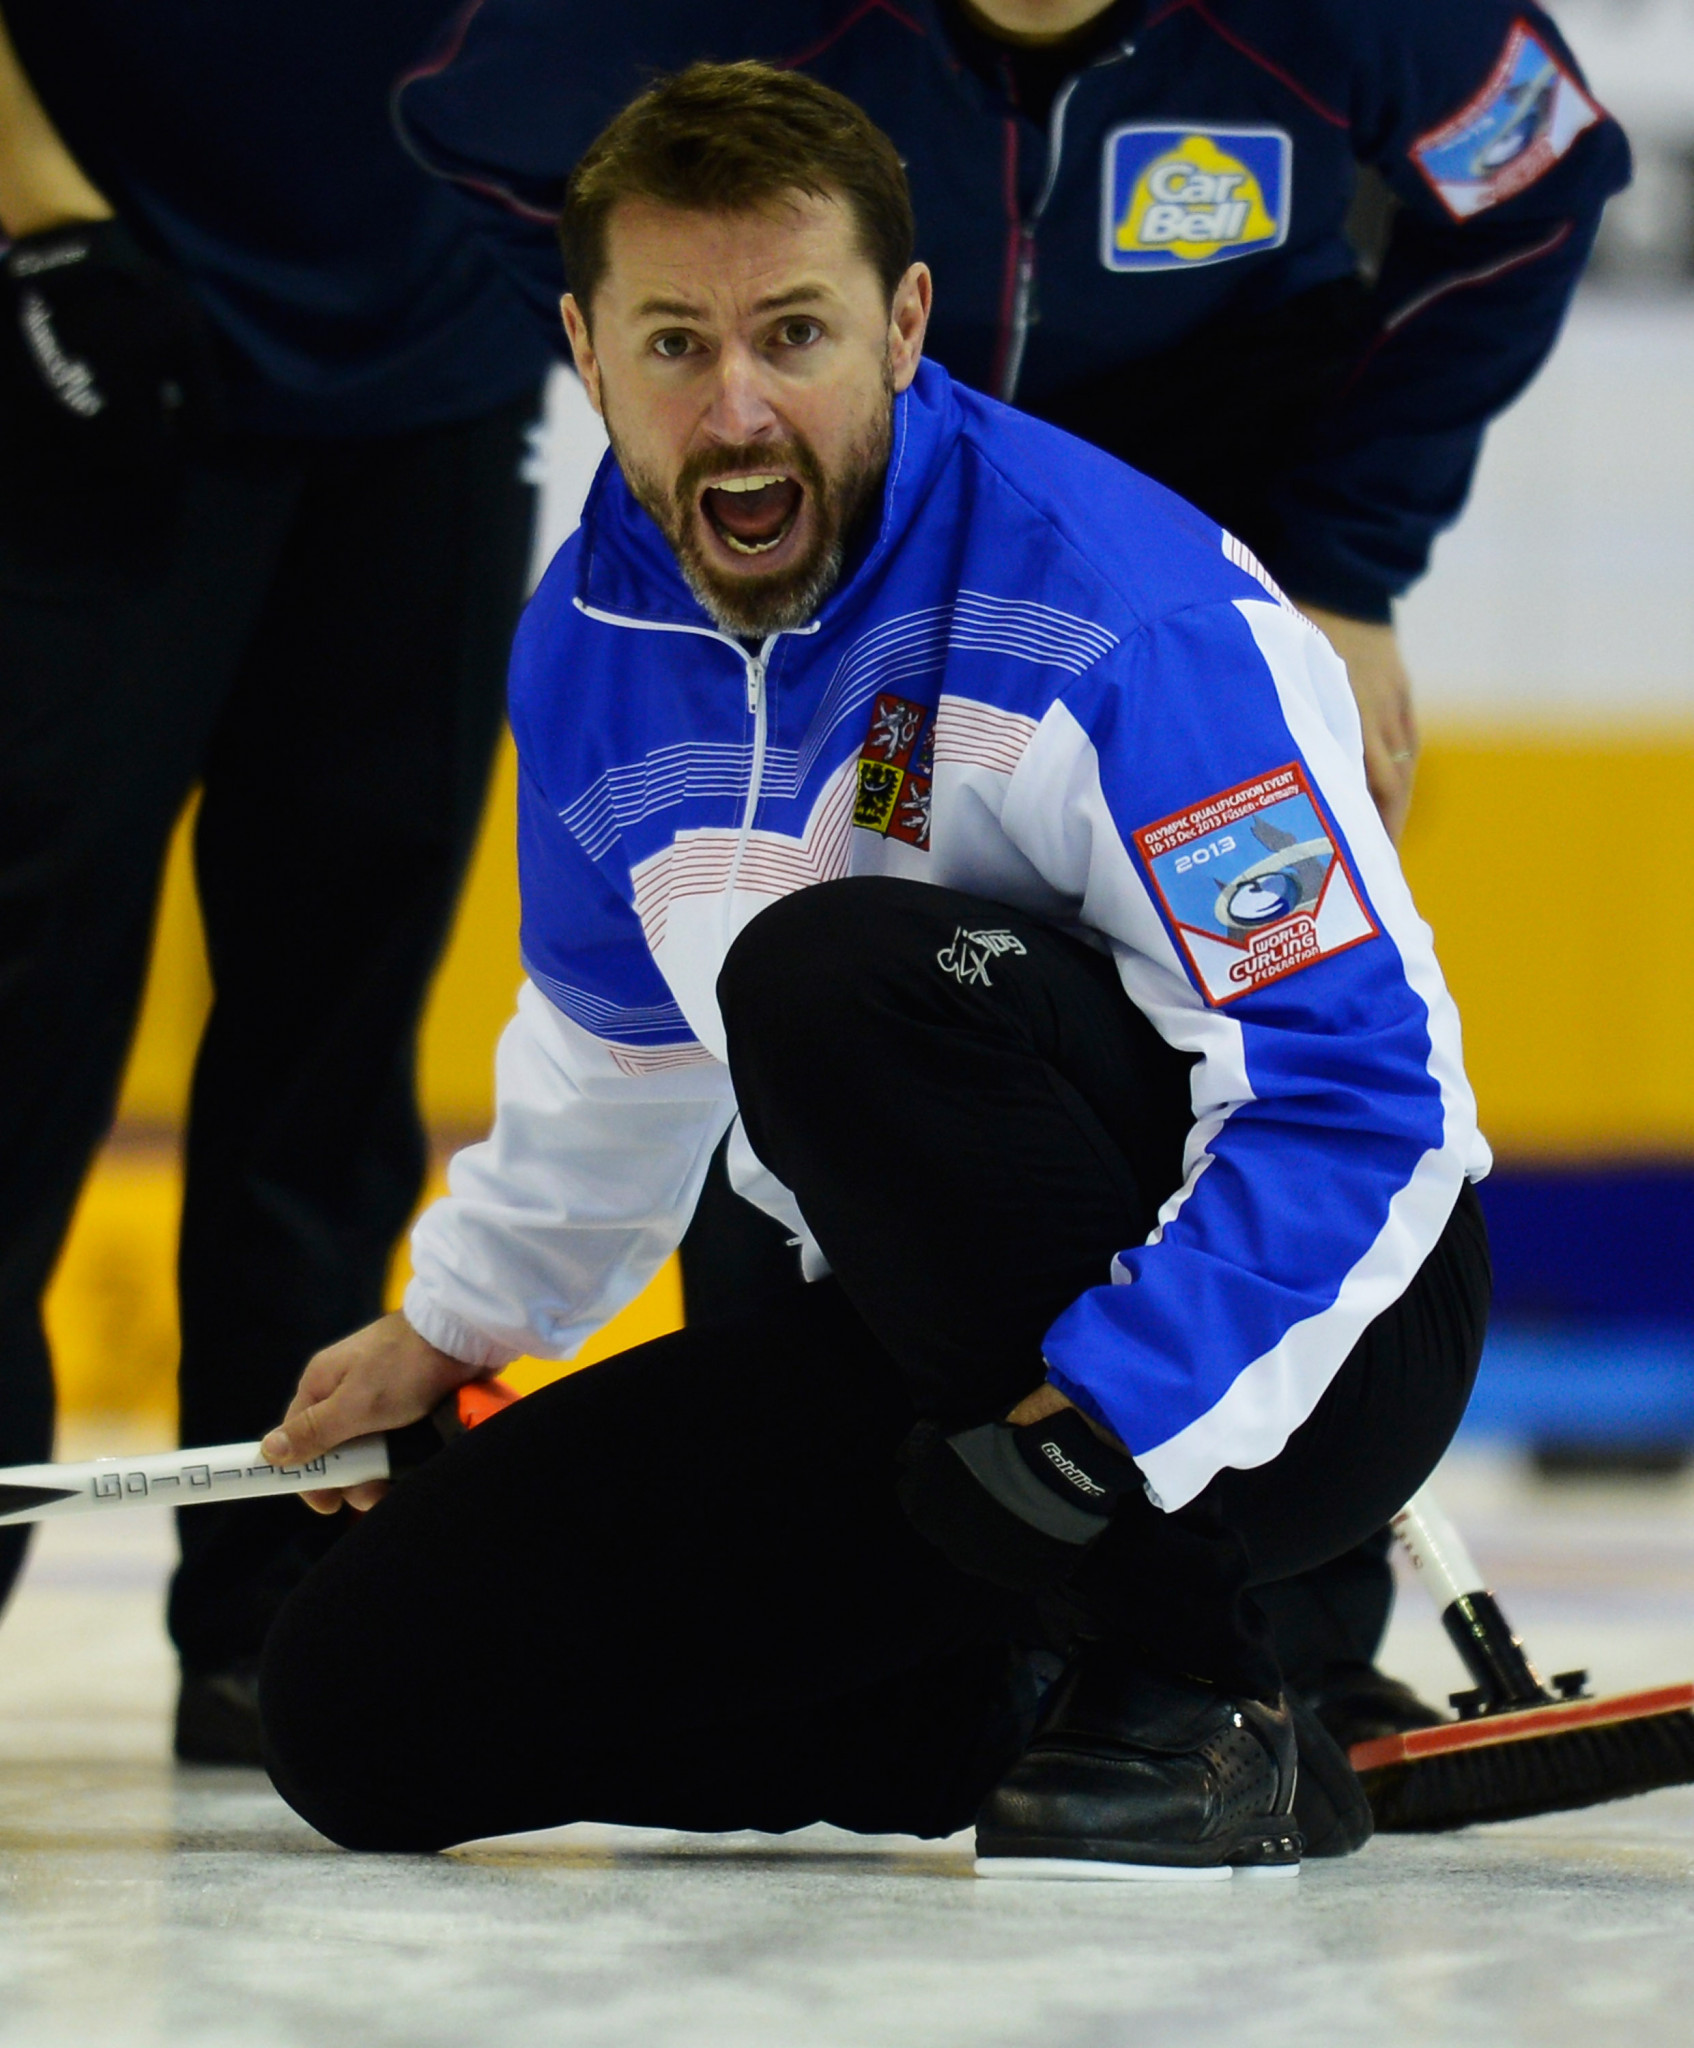 Czech Jiri Snitil believes his experience of professional curling will help him in his new role ©Getty Images